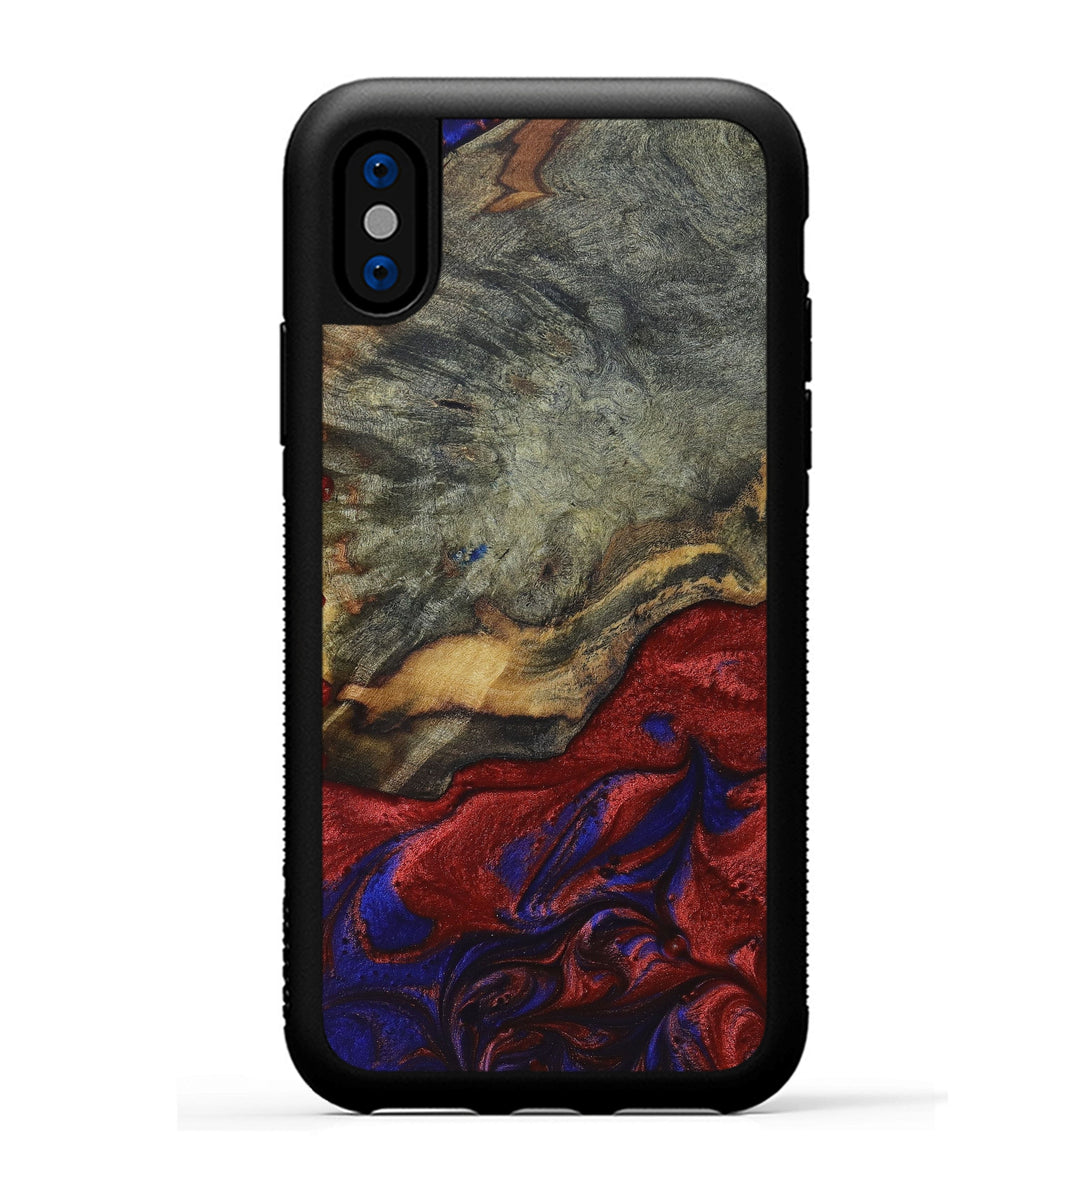 iPhone X Wood+Resin Phone Case - Tak (Blue & Red, 395959)